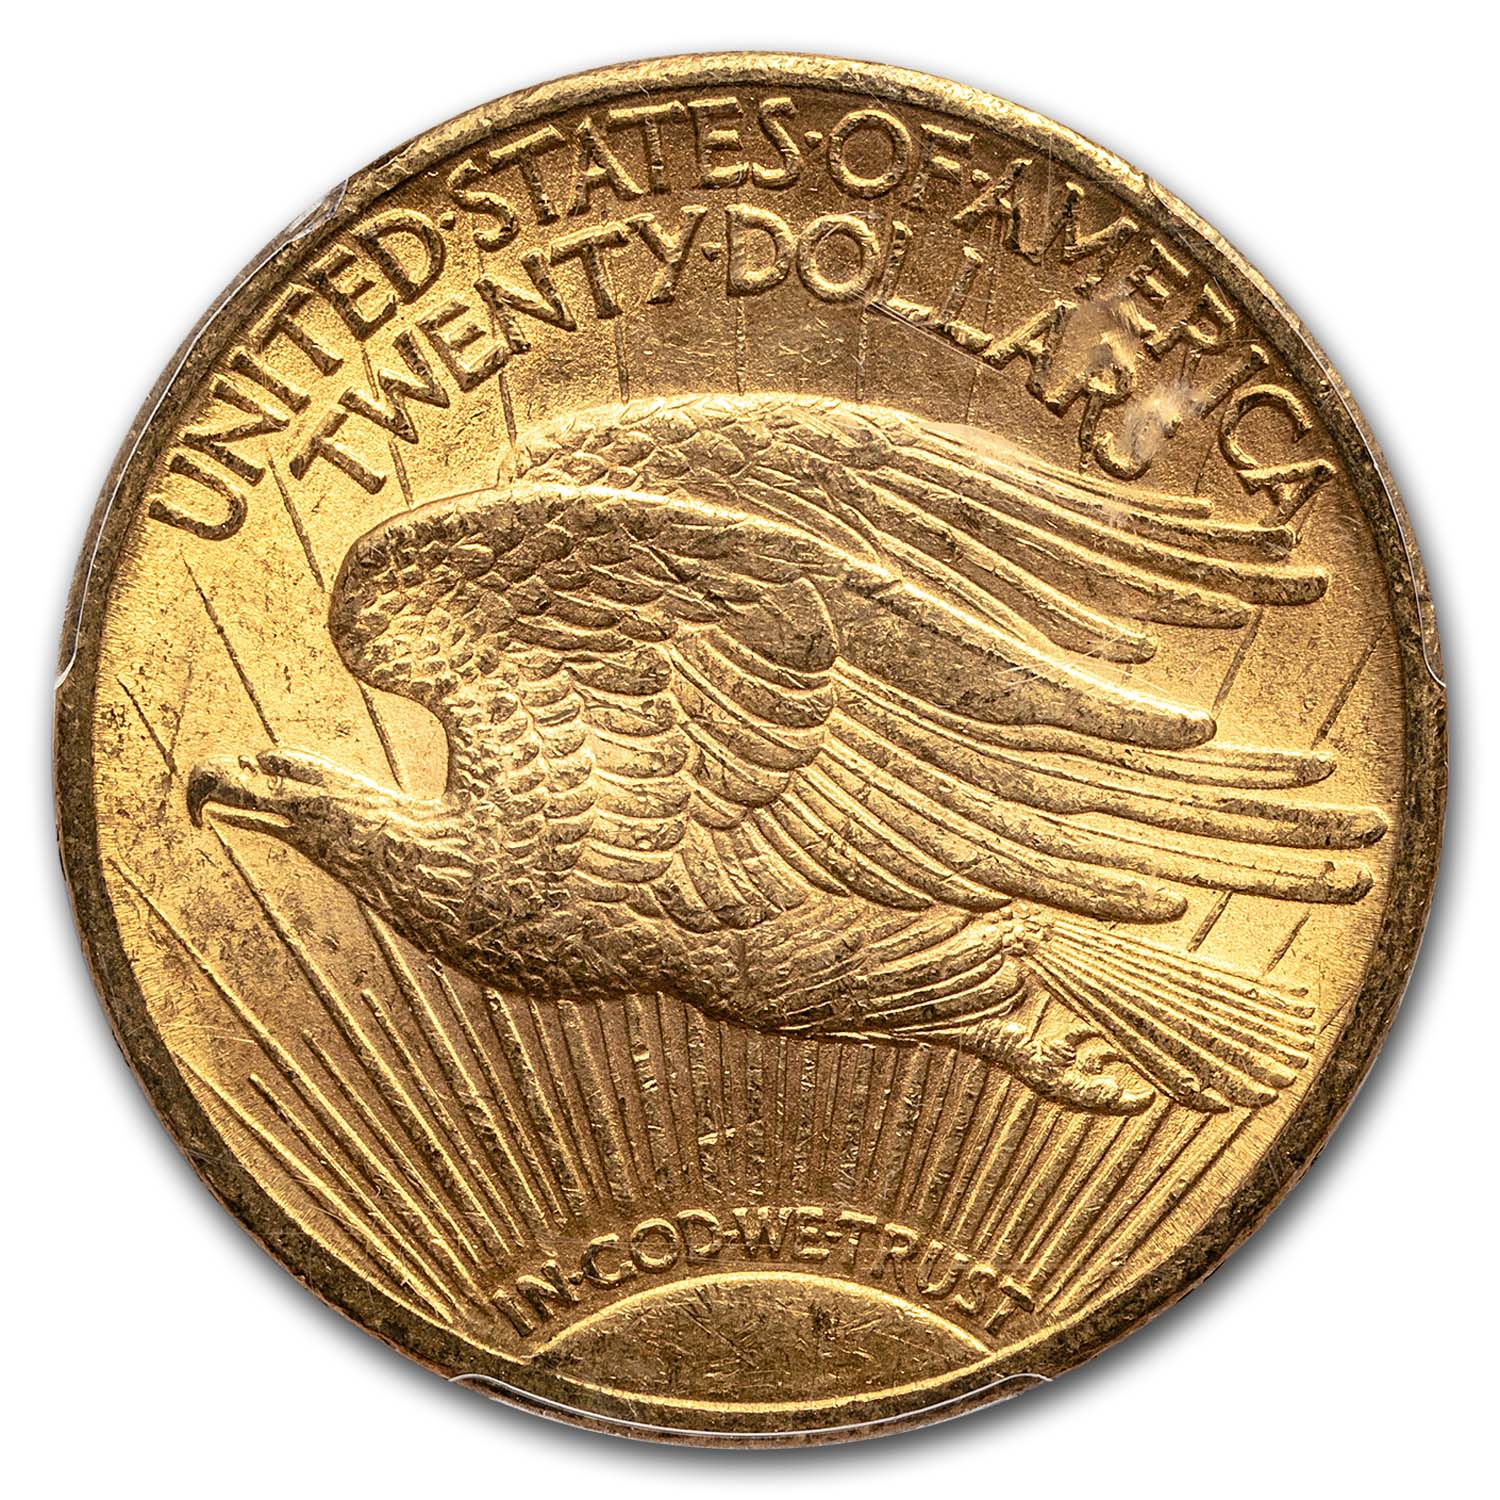 1911 $20 St. Gaudens Gold Double Eagle - MS-62 PCGS